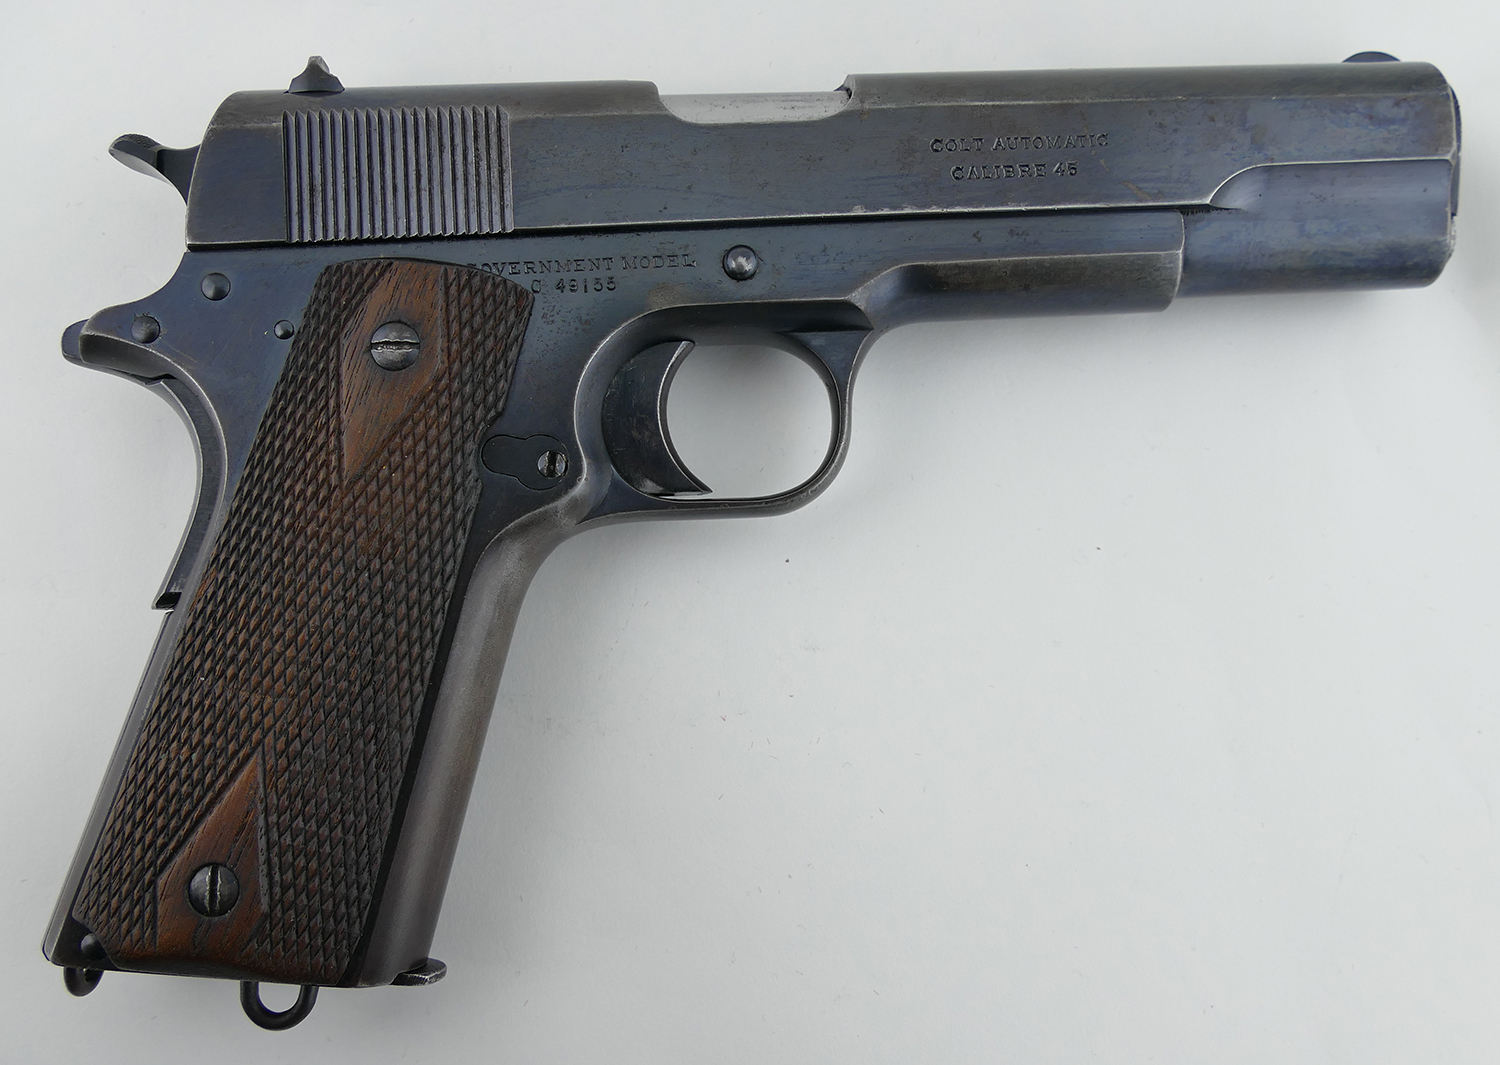 from Grant dating colt pistols